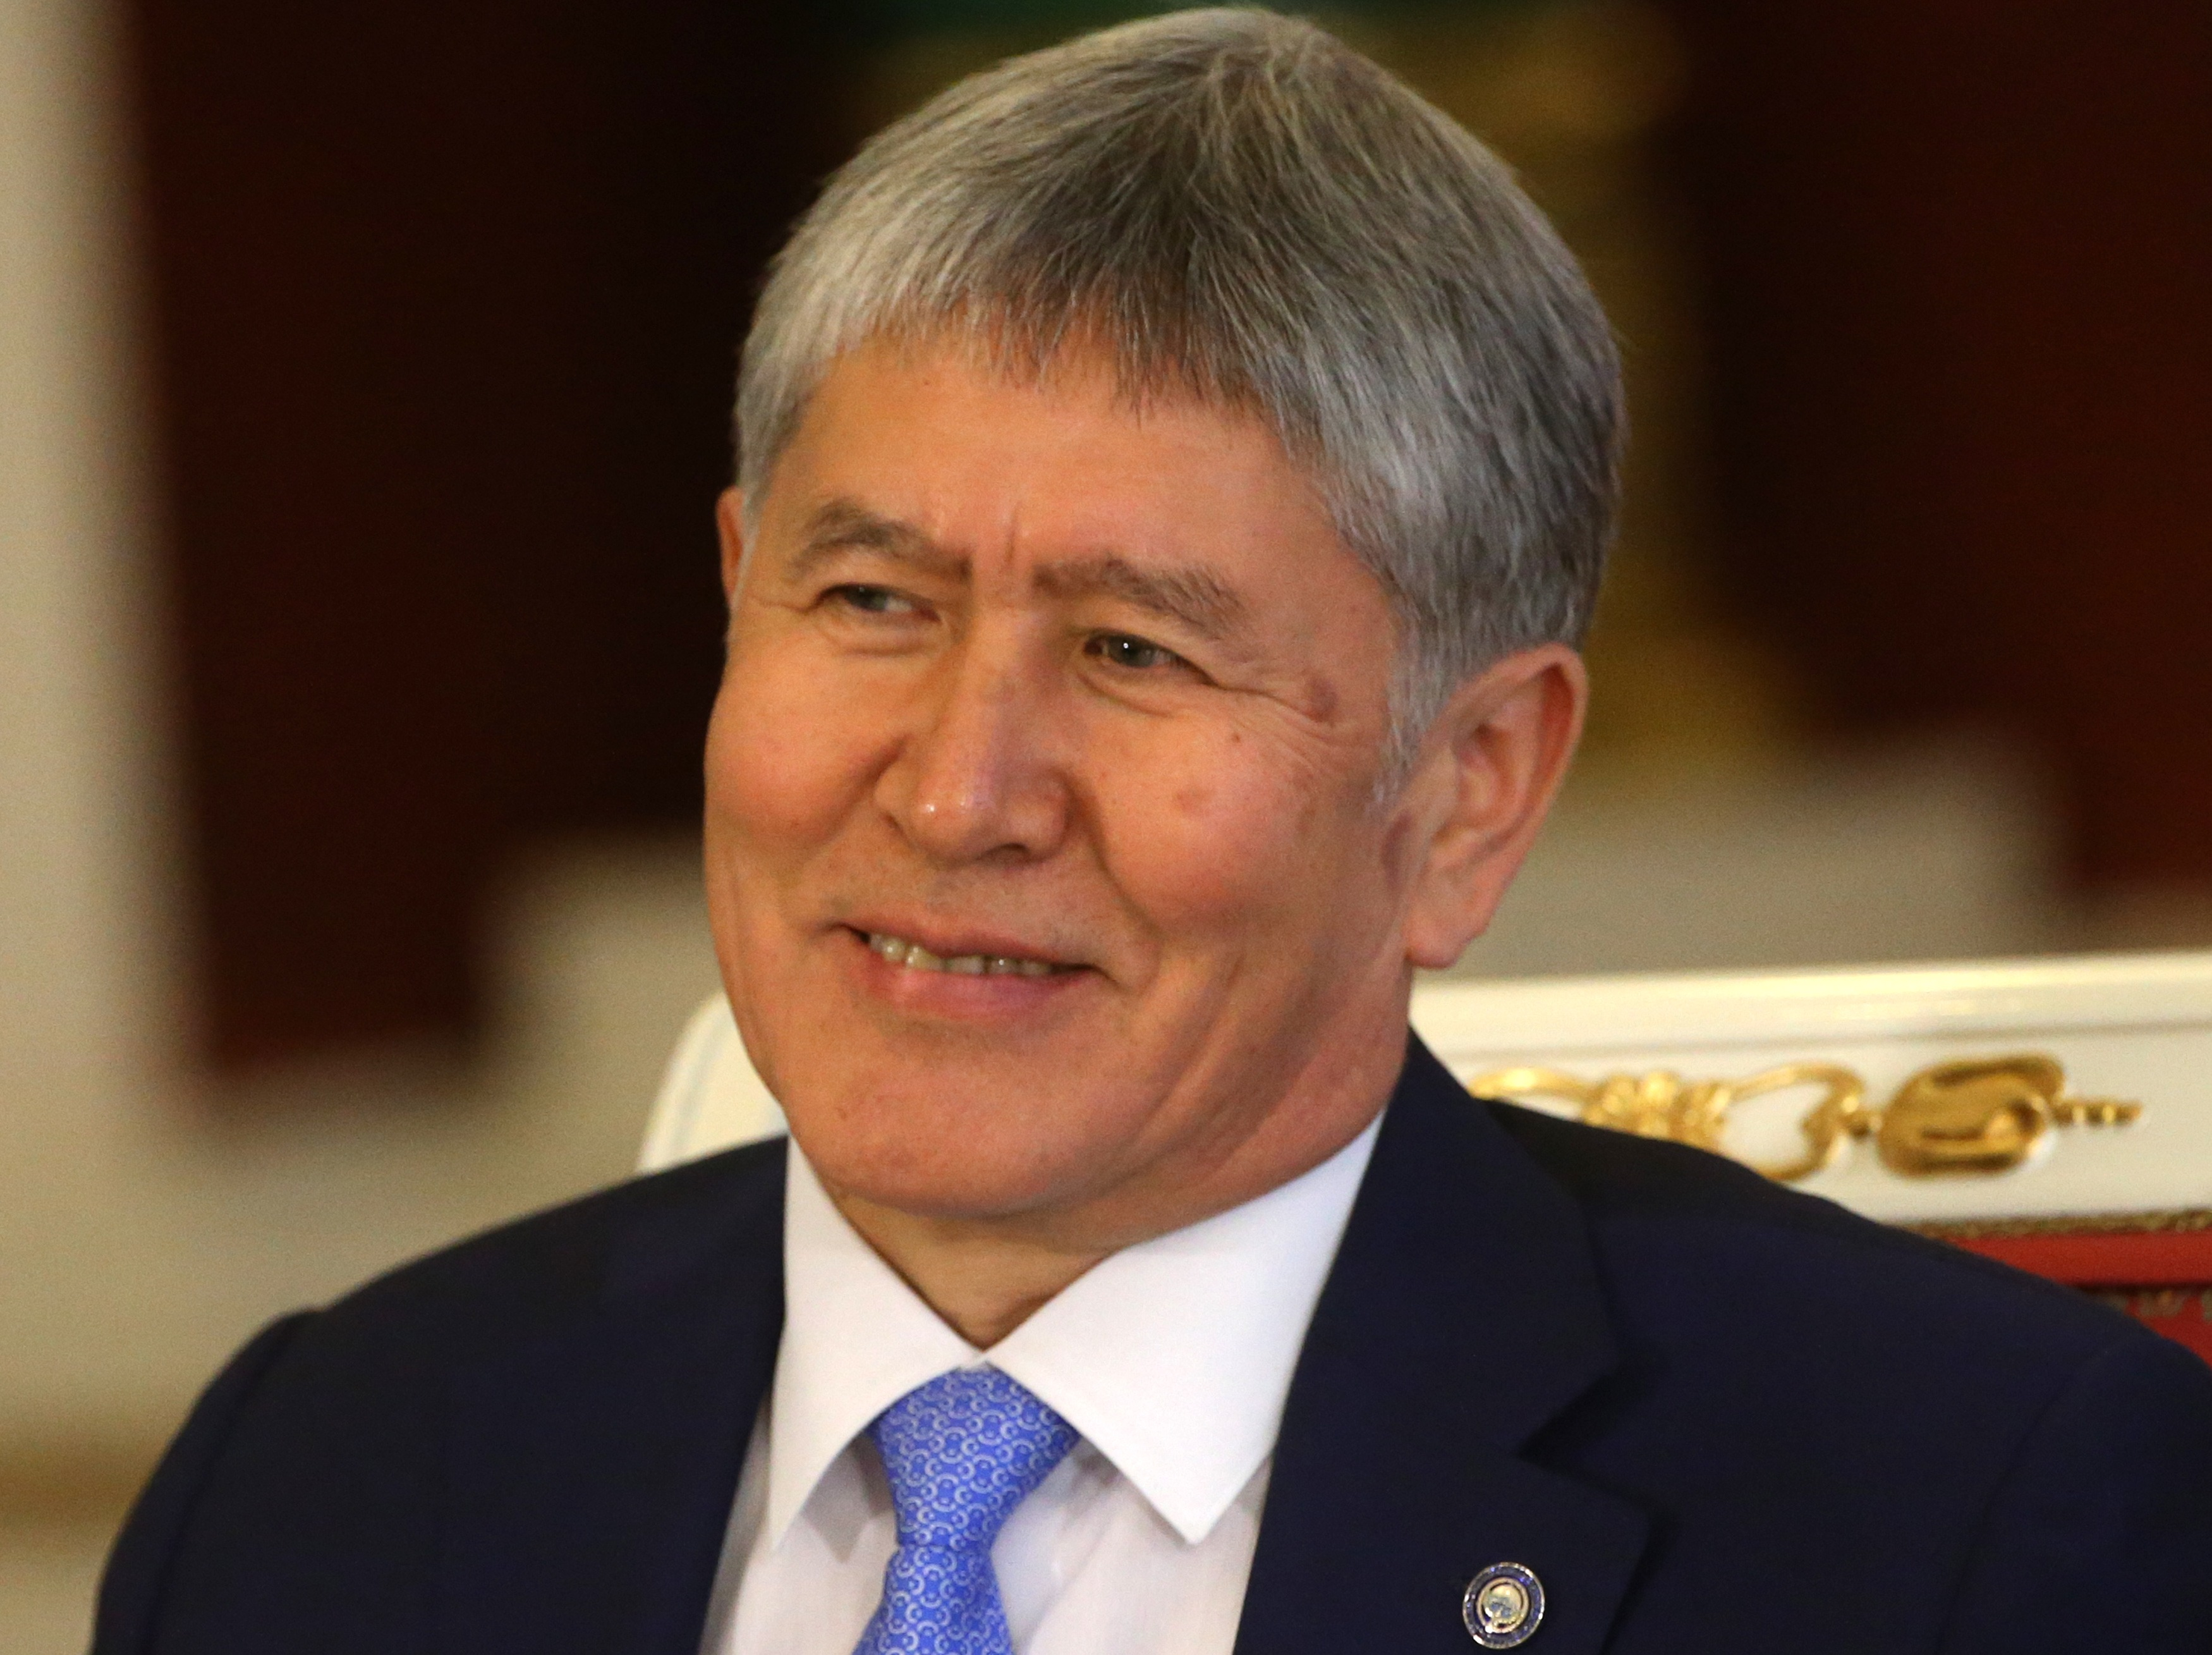 Kyrgyz President Almazbek Atambayev  attends Russian-Kyrgyz talks at the Grand Kremlin Palace on June 20, 2017 in Moscow, Russia